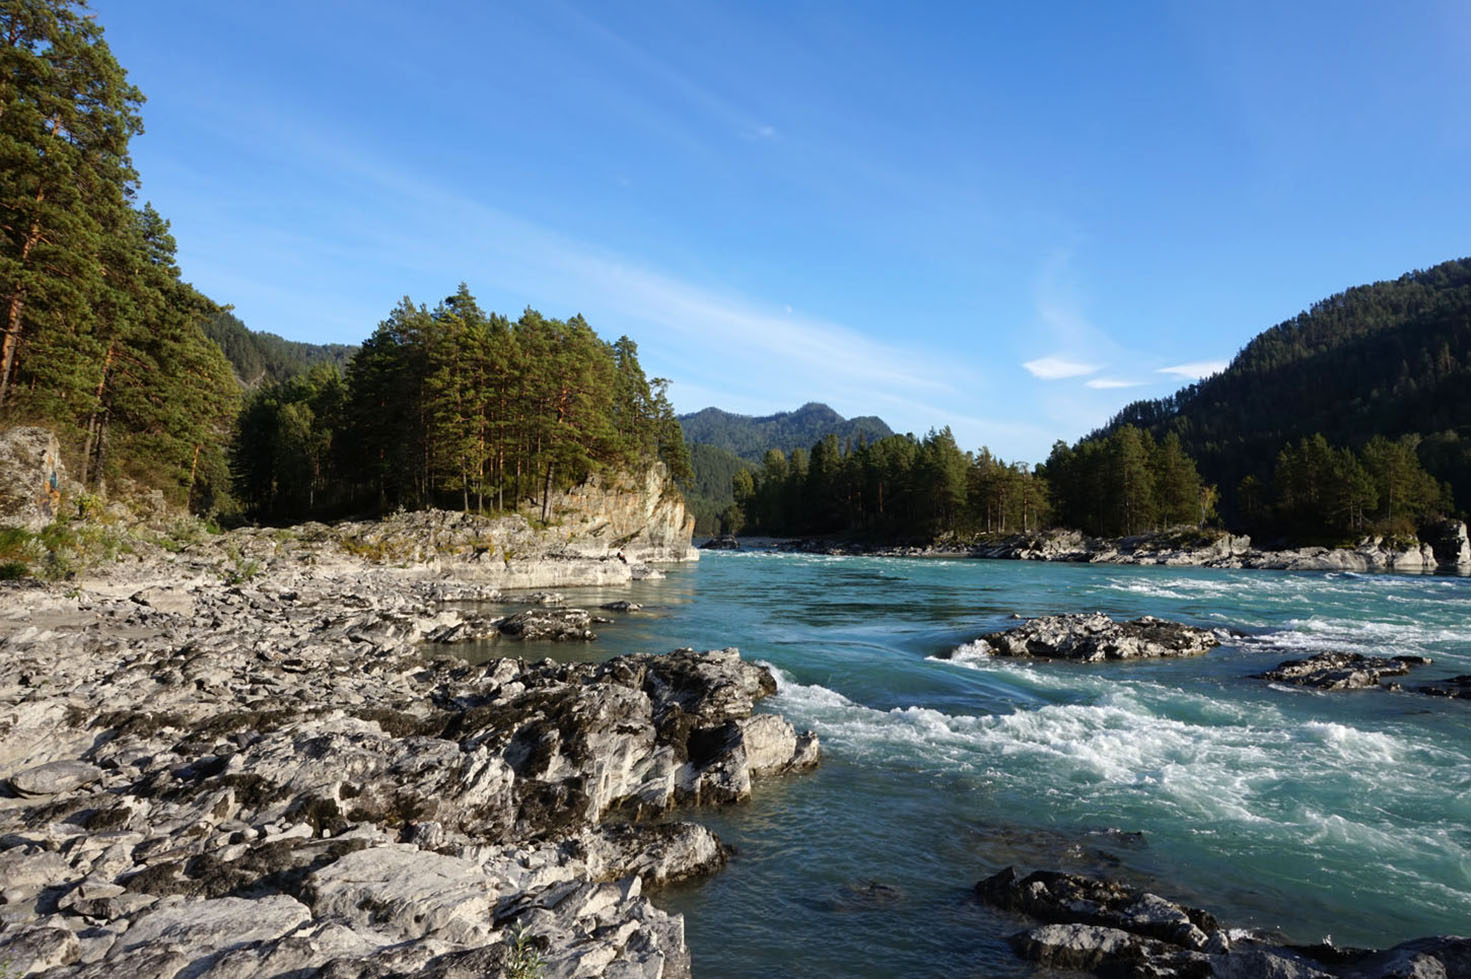 Altai Mountains - Katun River in Ust'-Muny